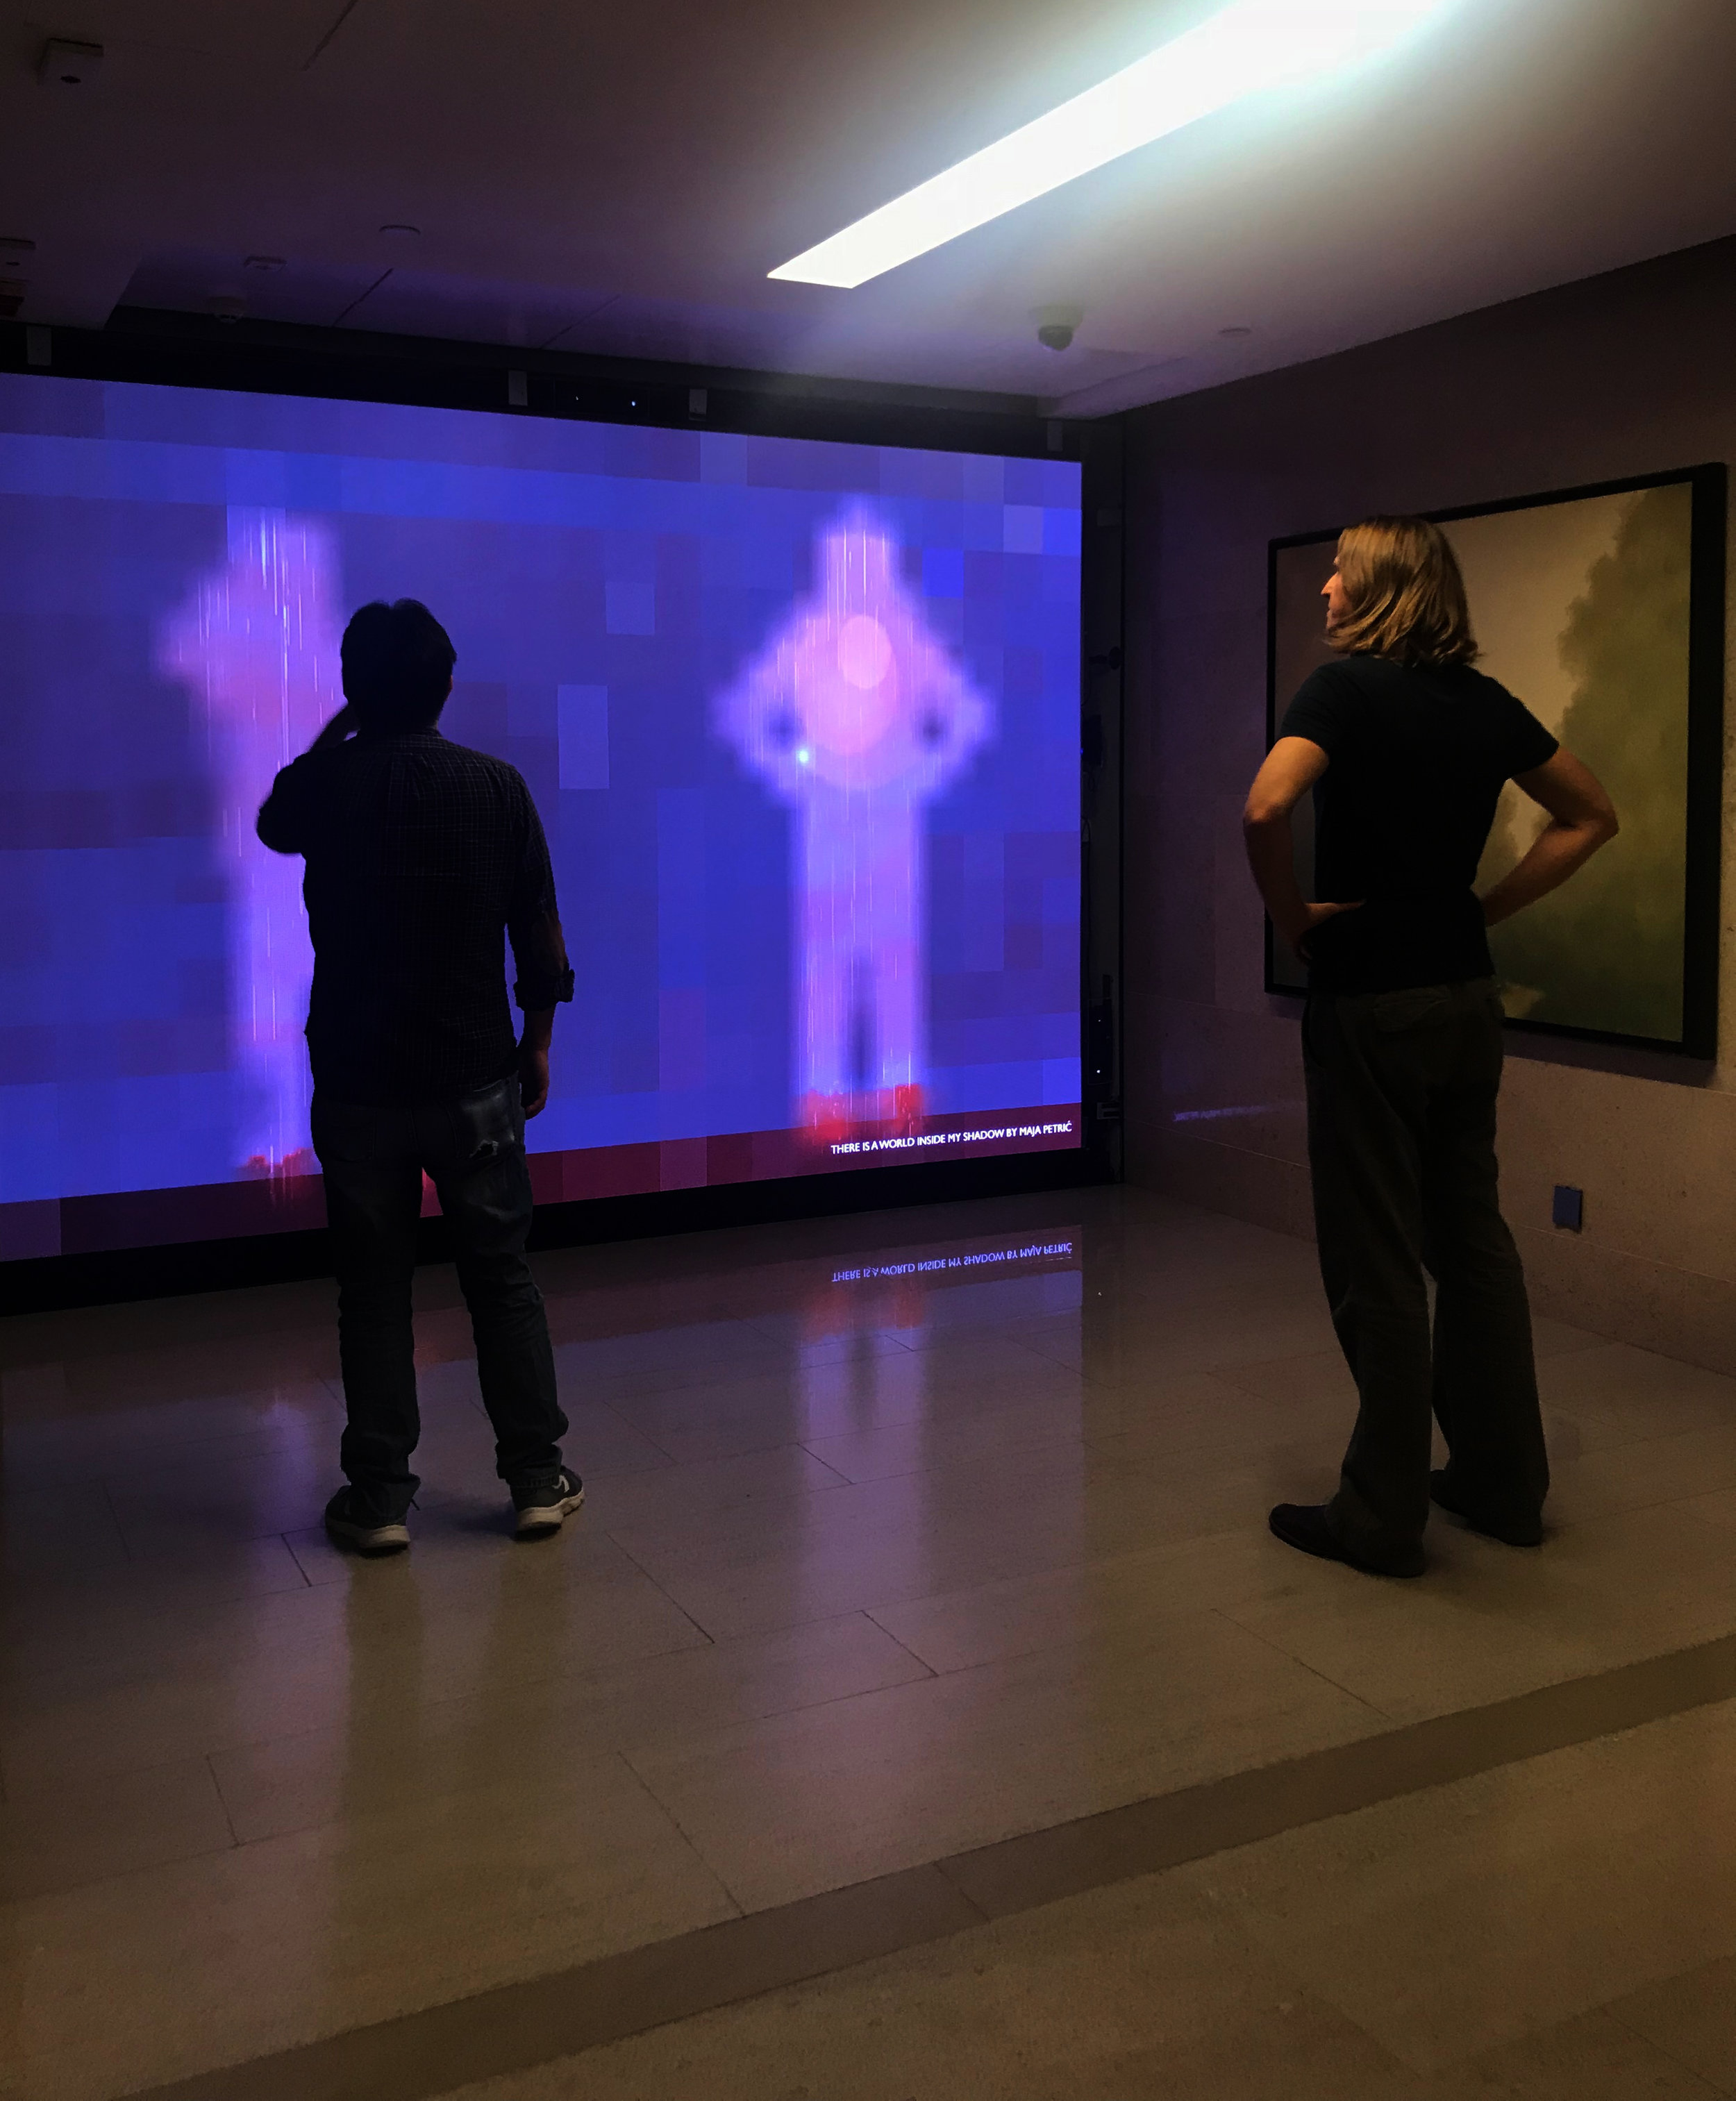 There is Another World Inside My Shadow  Interactive Video Art Installation  Hong Kong Landmark, Hong Kong, China, February 2018 - February 2020